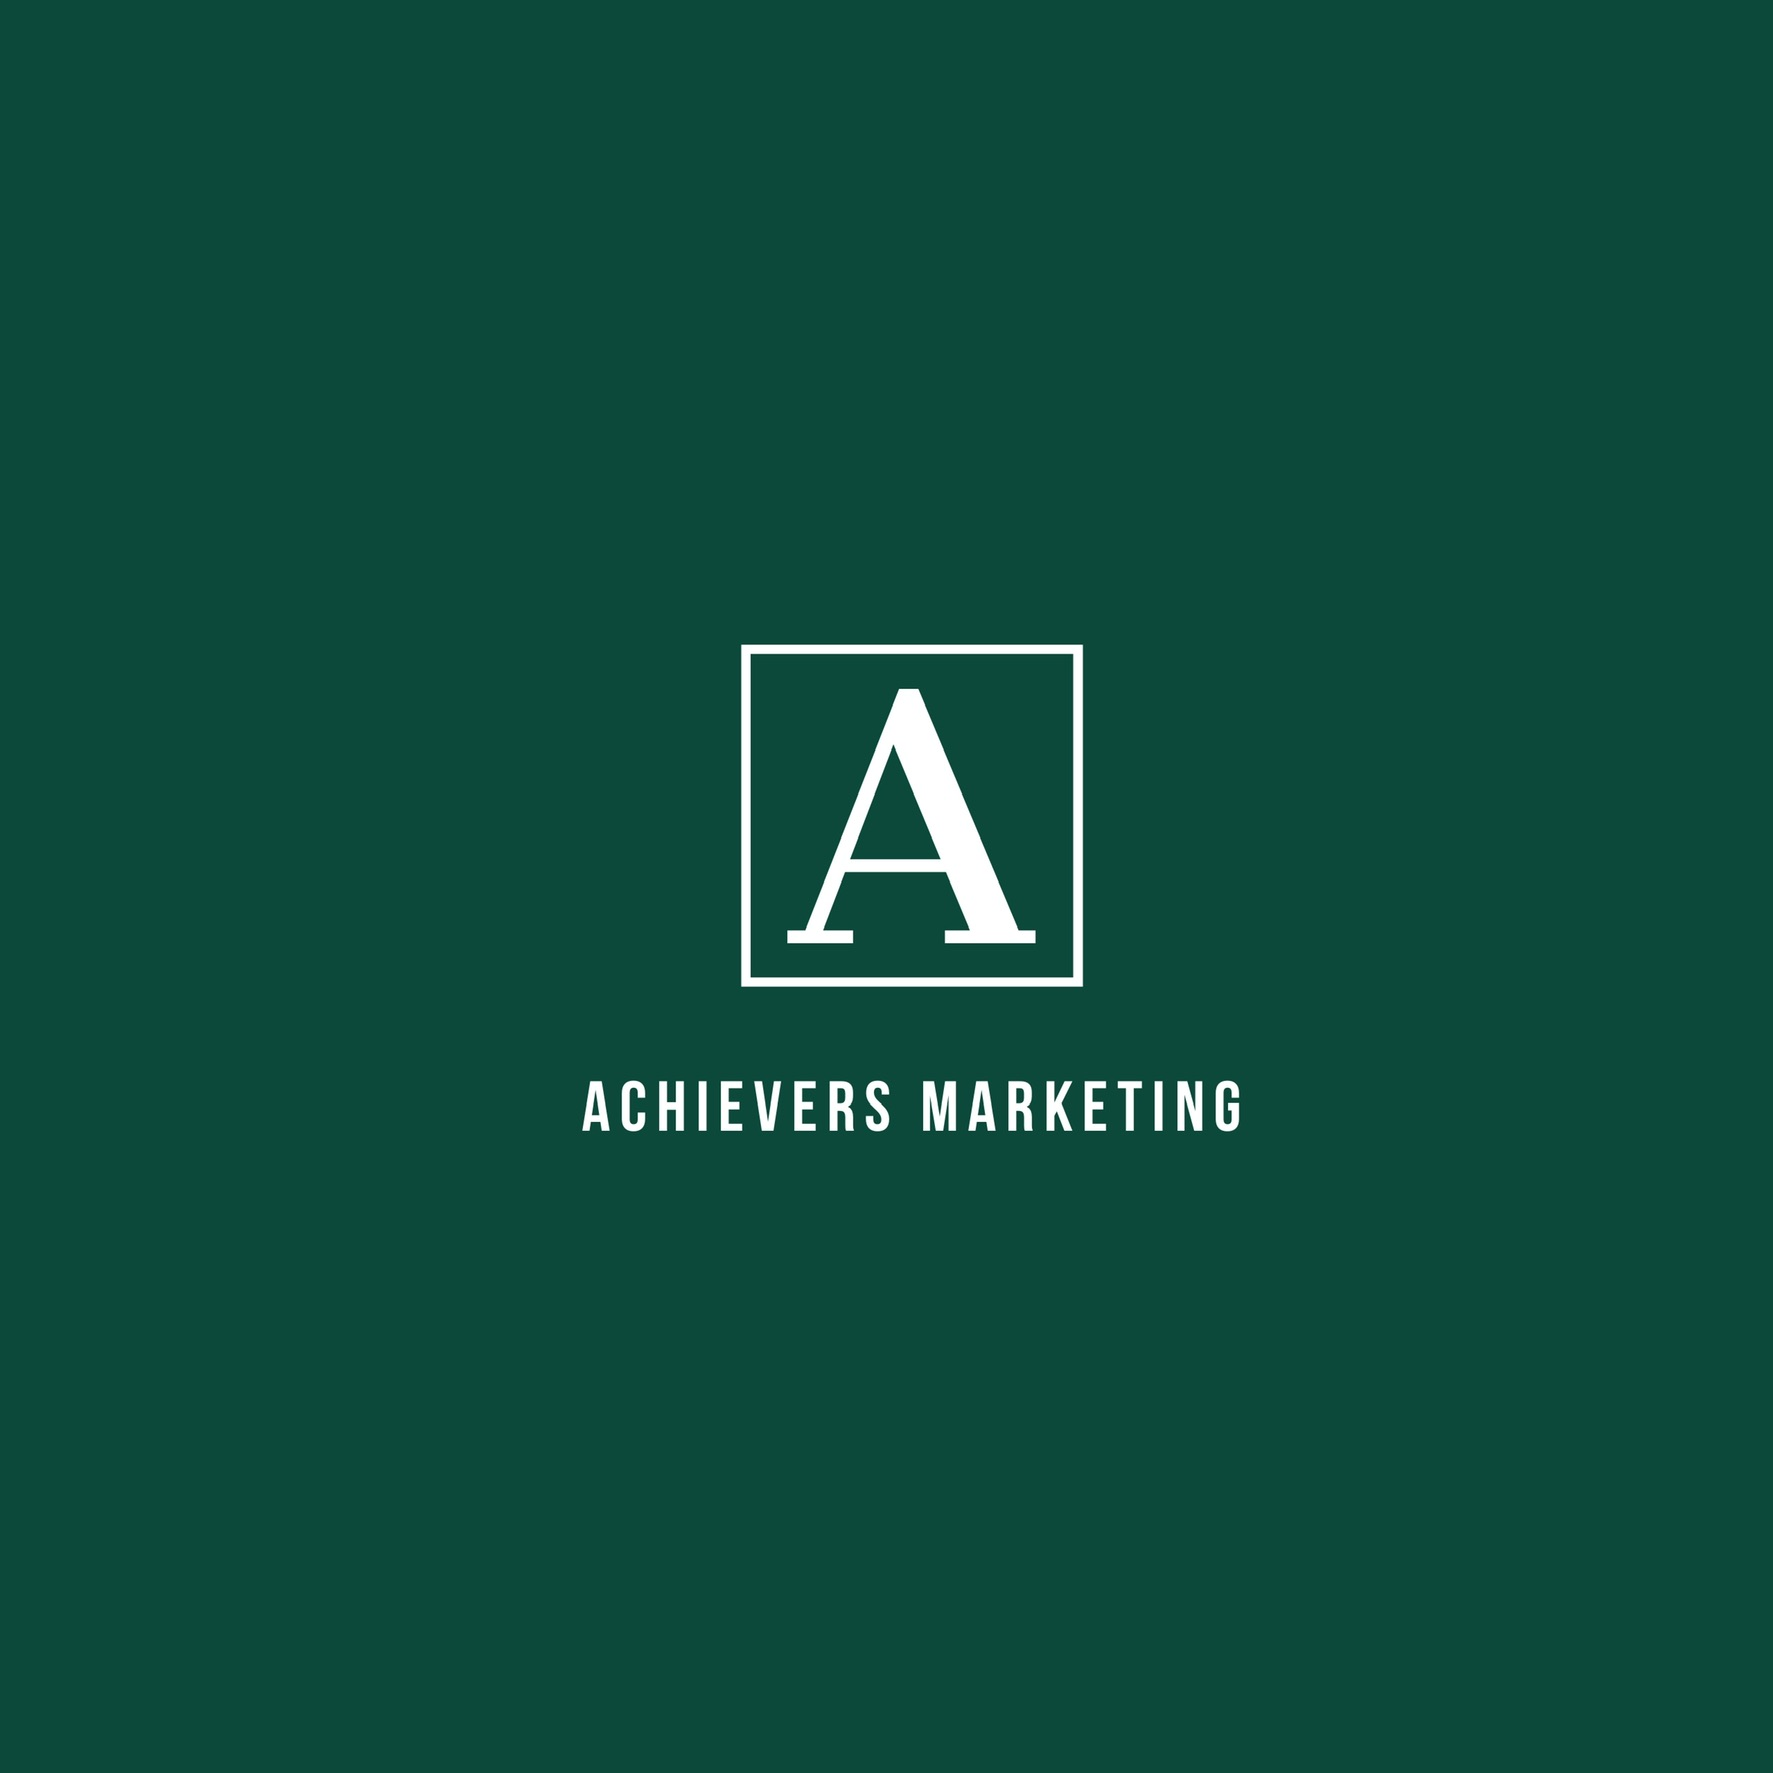 Vision Organisation (Achievers Marketing)